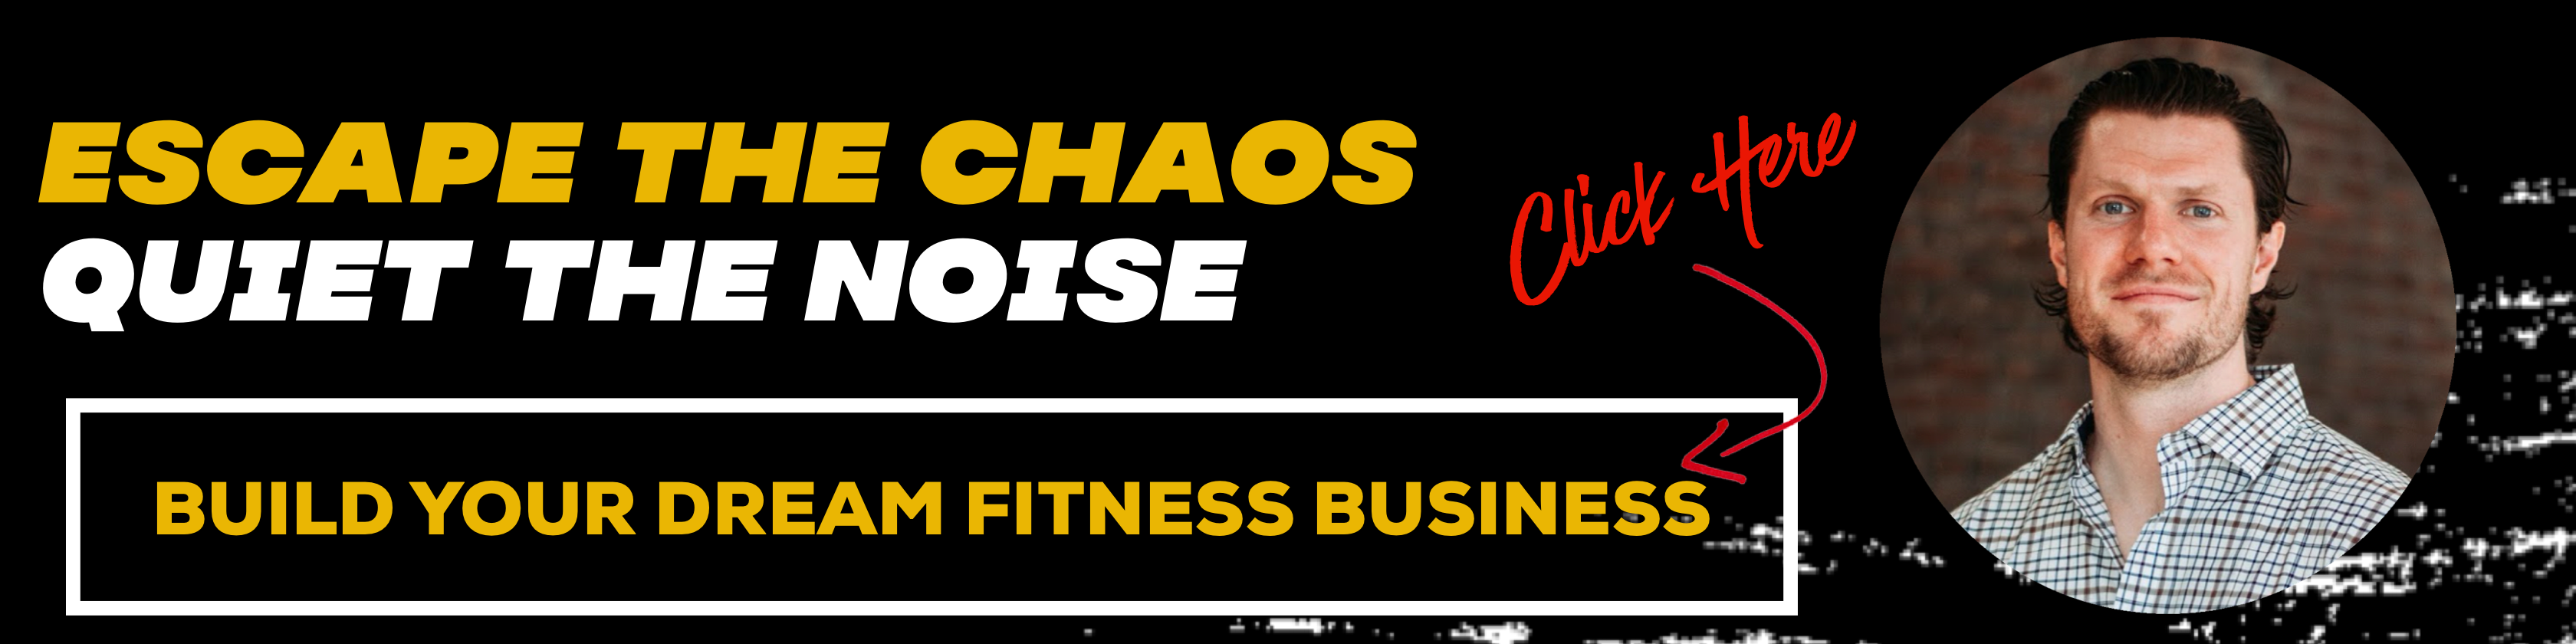 Build Fitness Business